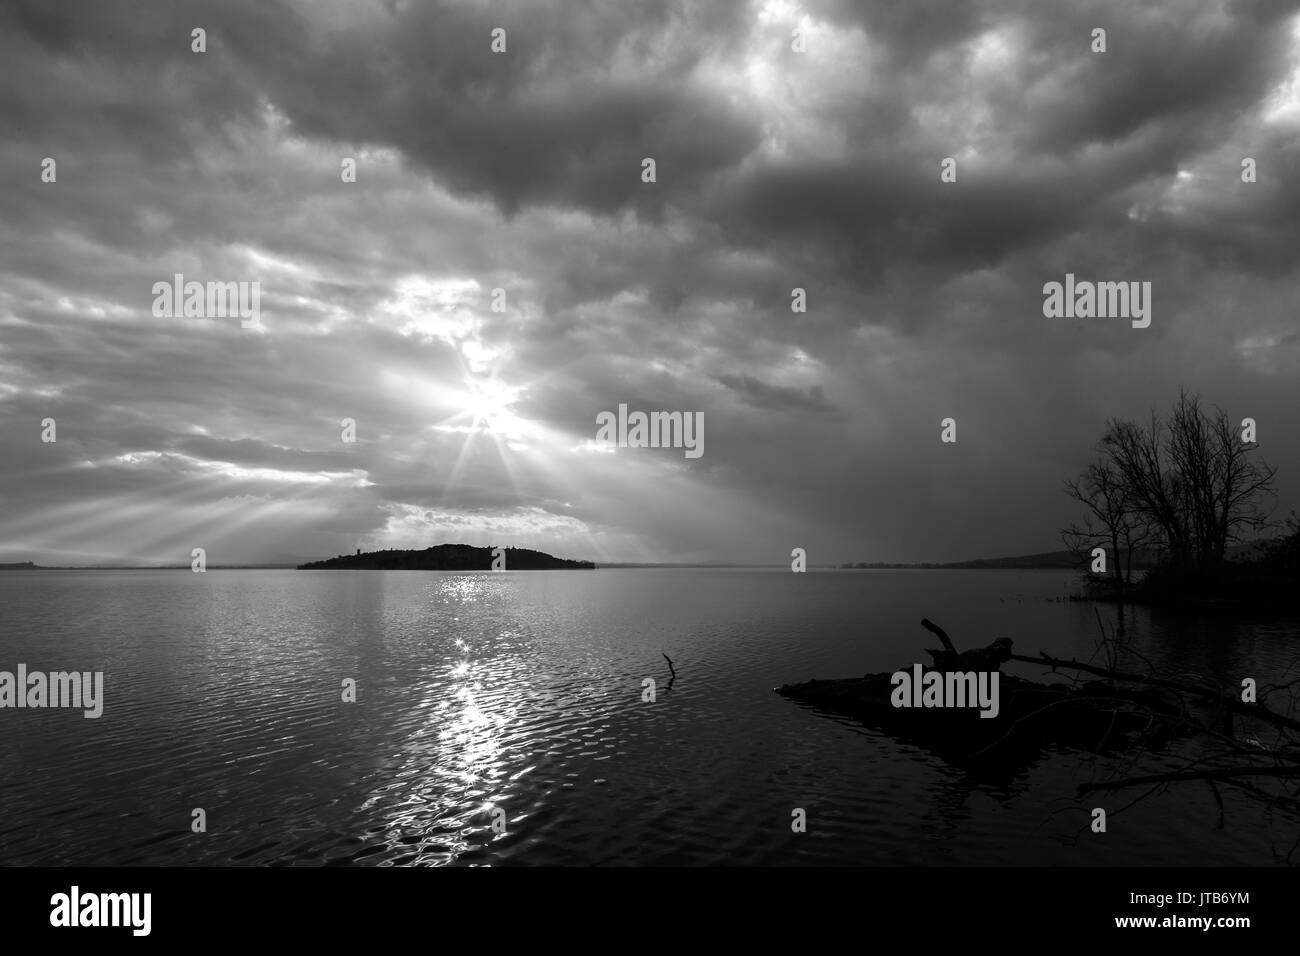 Sun rays coming out through the clouds over an island on a lake, with trees and trunks in the foreground - Stock Image